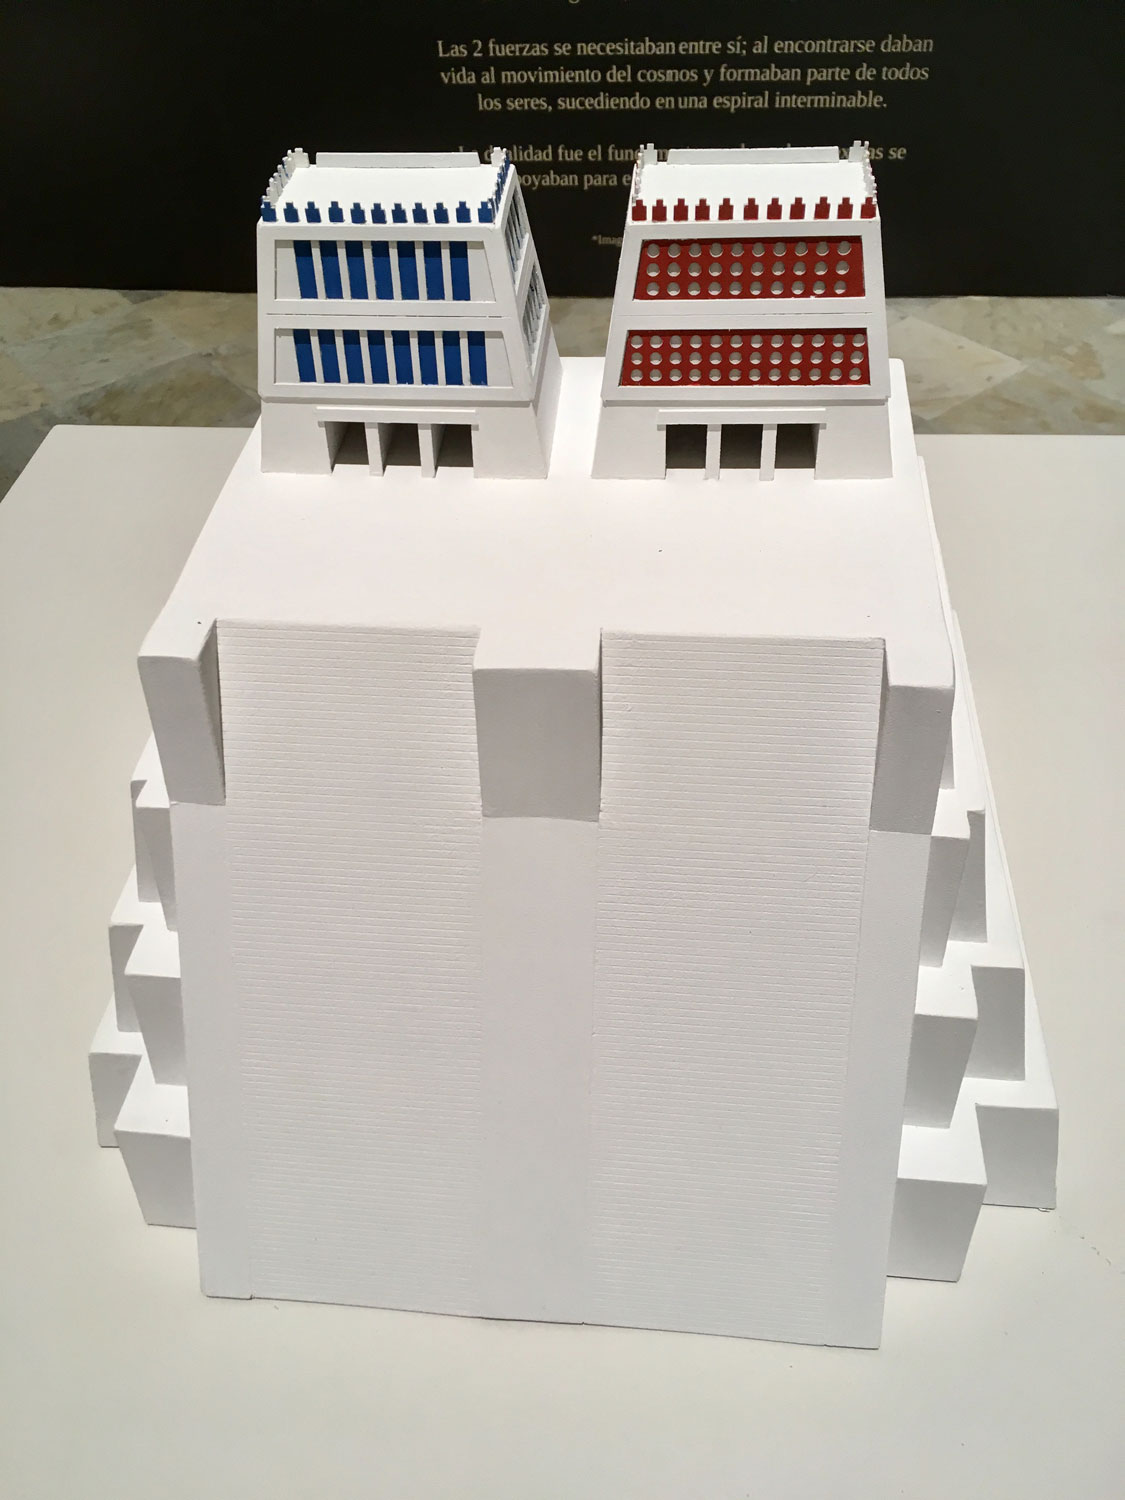 A model of the Great Temple of Tenochtitlán.